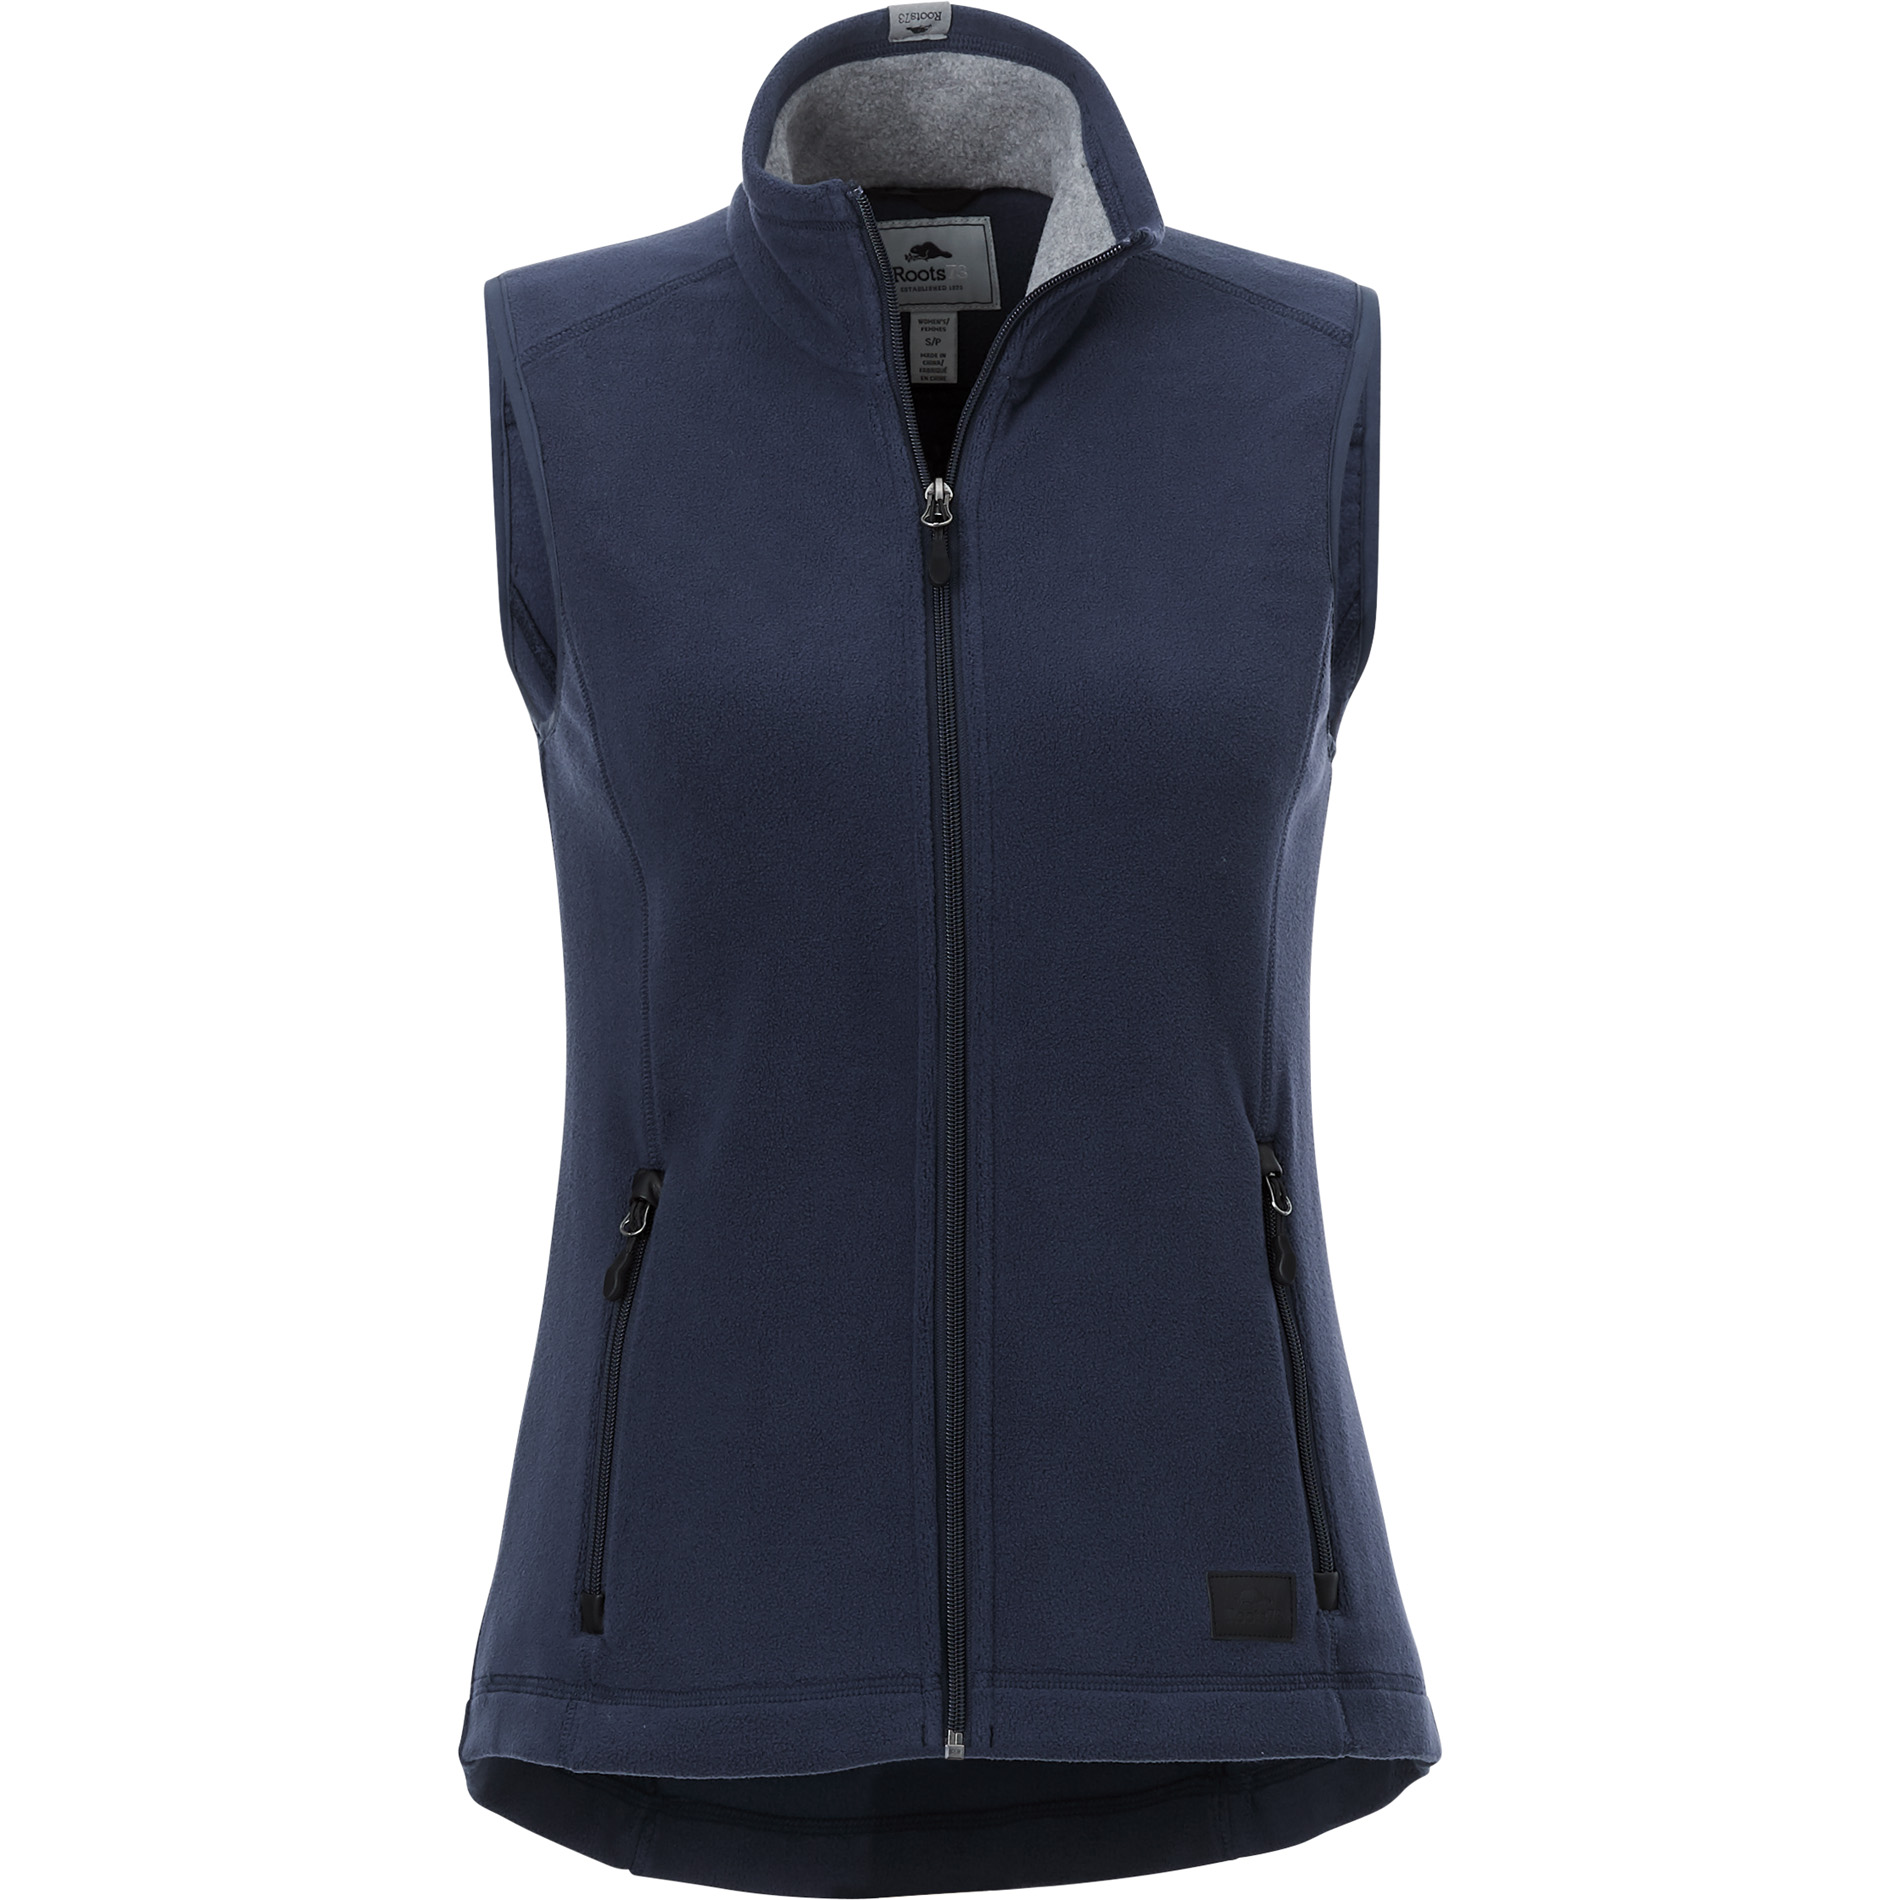 Roots73 TM98505 - Women's Willowbeach Mircofleece Vest